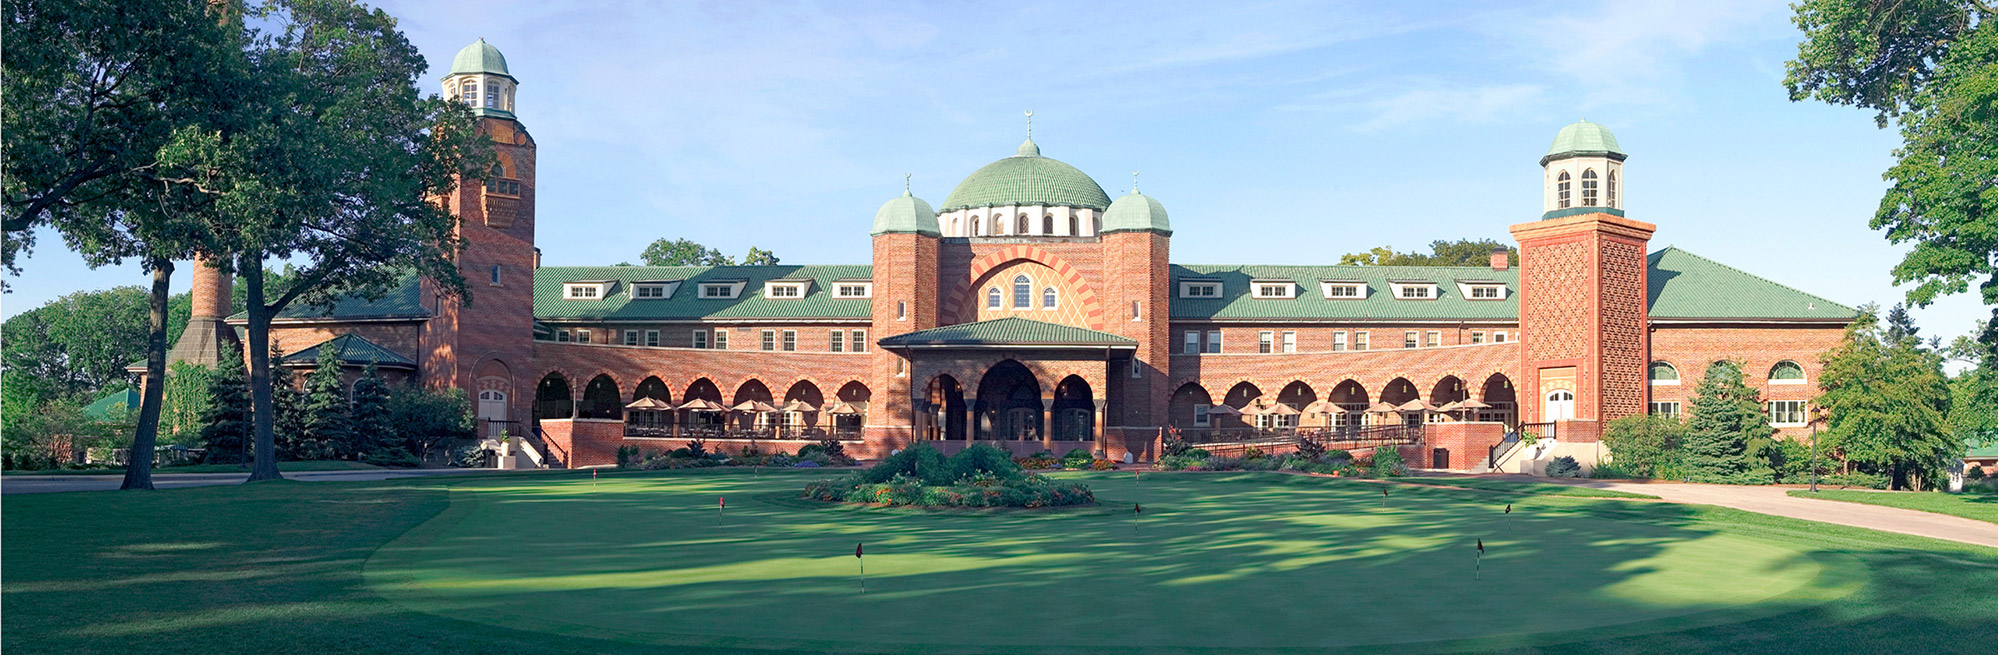 Golf Course Image - Medinah 3 Clubhouse